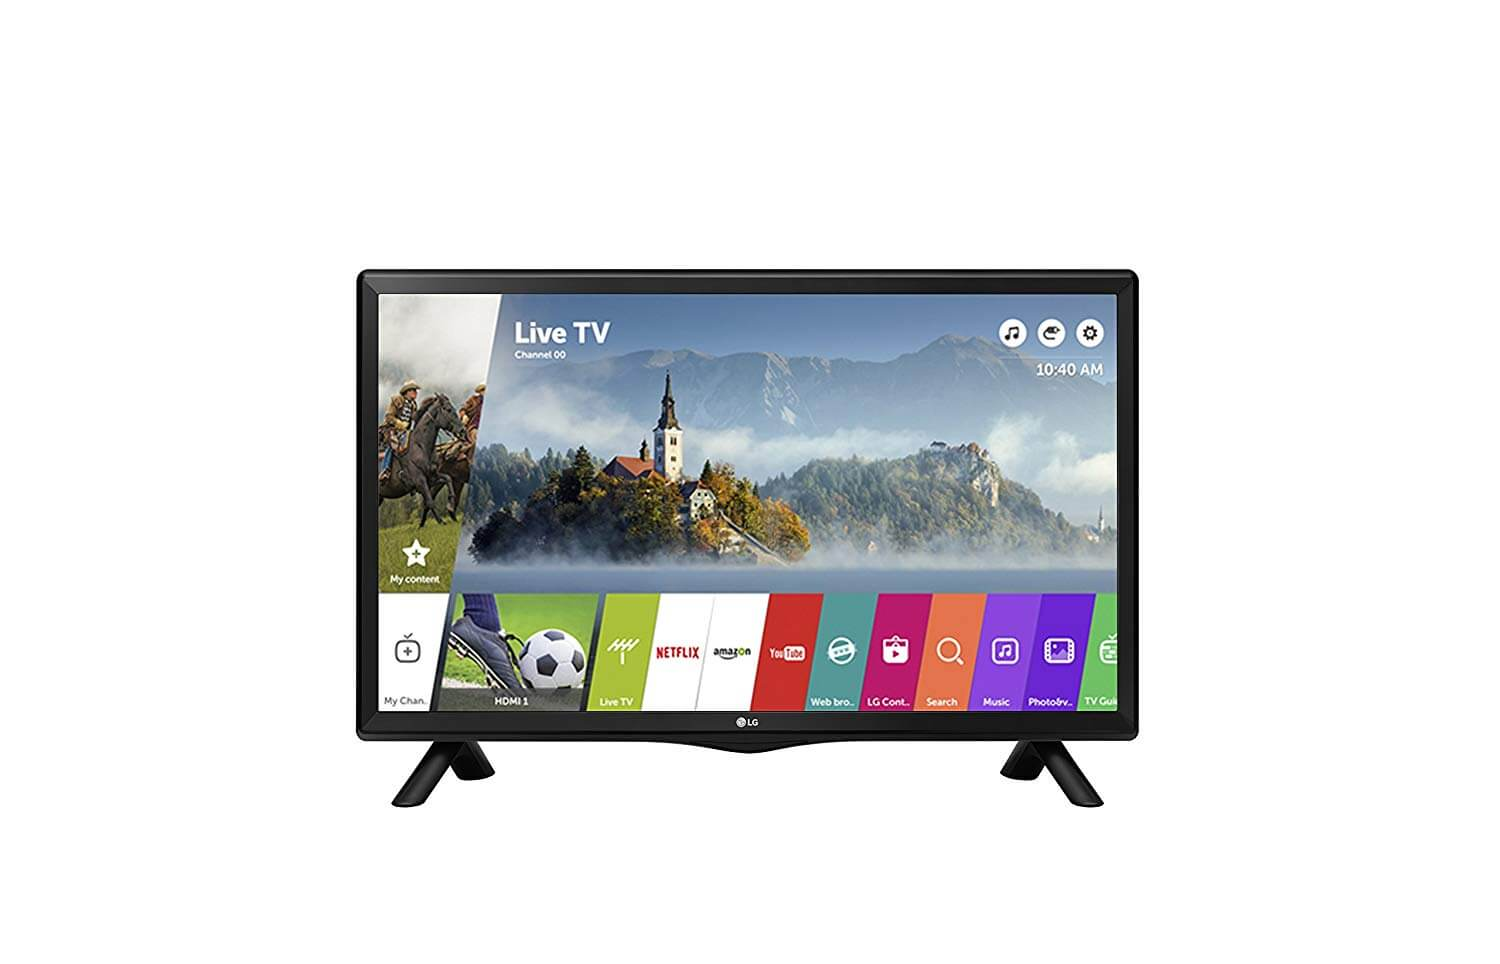 LG 28TK420S-PZ 720p HD Ready 28 inch Smart TV (2018 Model) (Black Glossy) for £199.95